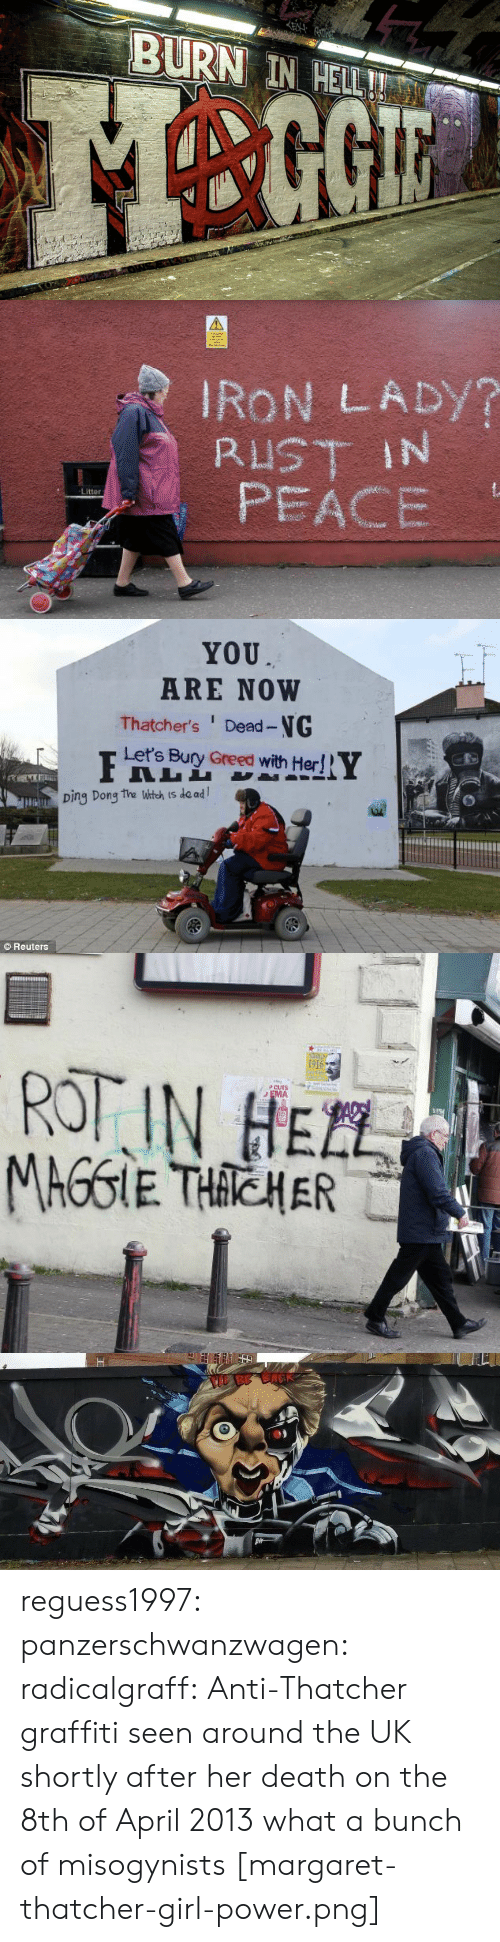 rot: EN  BURN IN HELL!   IRON LADY?  RUST IN  PEACE  Litter   YOU  ARE NOW  Thatcher's Dead-NG  Let's Bury Greed with Her!  Ding Dong the Witch is de ad  Reuters   1916  ROT IN HEZL  PCUTS  EMA  TEL  MAGGIE THACHER   BE BACK reguess1997: panzerschwanzwagen:   radicalgraff: Anti-Thatcher graffiti seen around the UK shortly after her death on the 8th of April 2013 what a bunch of misogynists   [margaret-thatcher-girl-power.png]